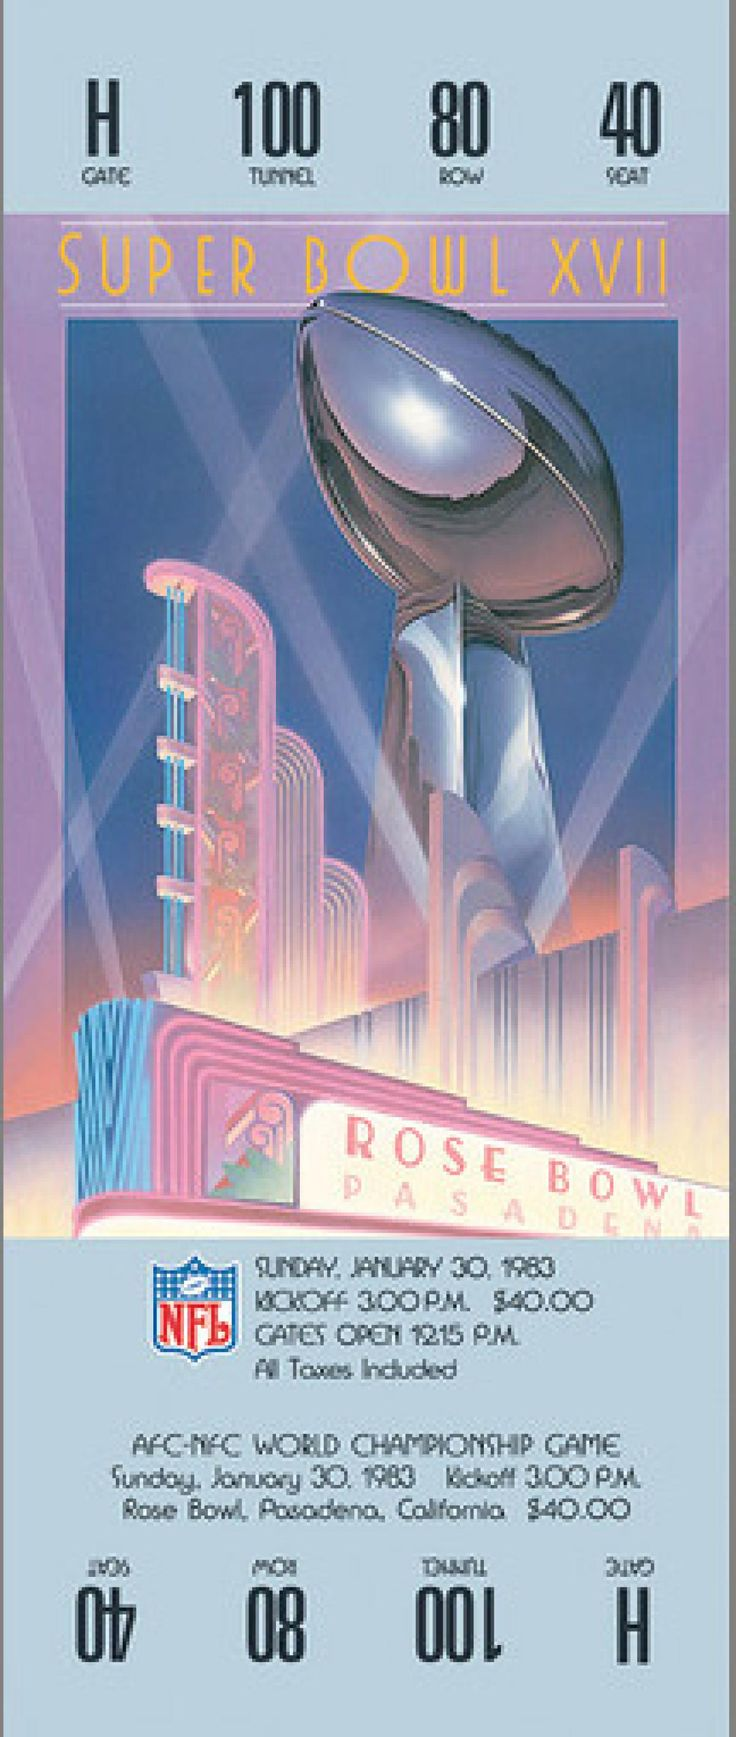 Super Bowl XVII - Washington Redskins vs. Miami Dolphins - Played on January 30, 1983, at the Rose Bowl in Pasadena, California. The average ticket cost for the game was $40.00. The MVP of the game was Redskins RB John Riggins. Favorite: Dolphins by 3. Referee: Jerry Markbreit. Attendance: 103,667. 30-second commercial: $400,000. Halftime show: Los Angeles Super Drill Team. Viewers - 81.7 million